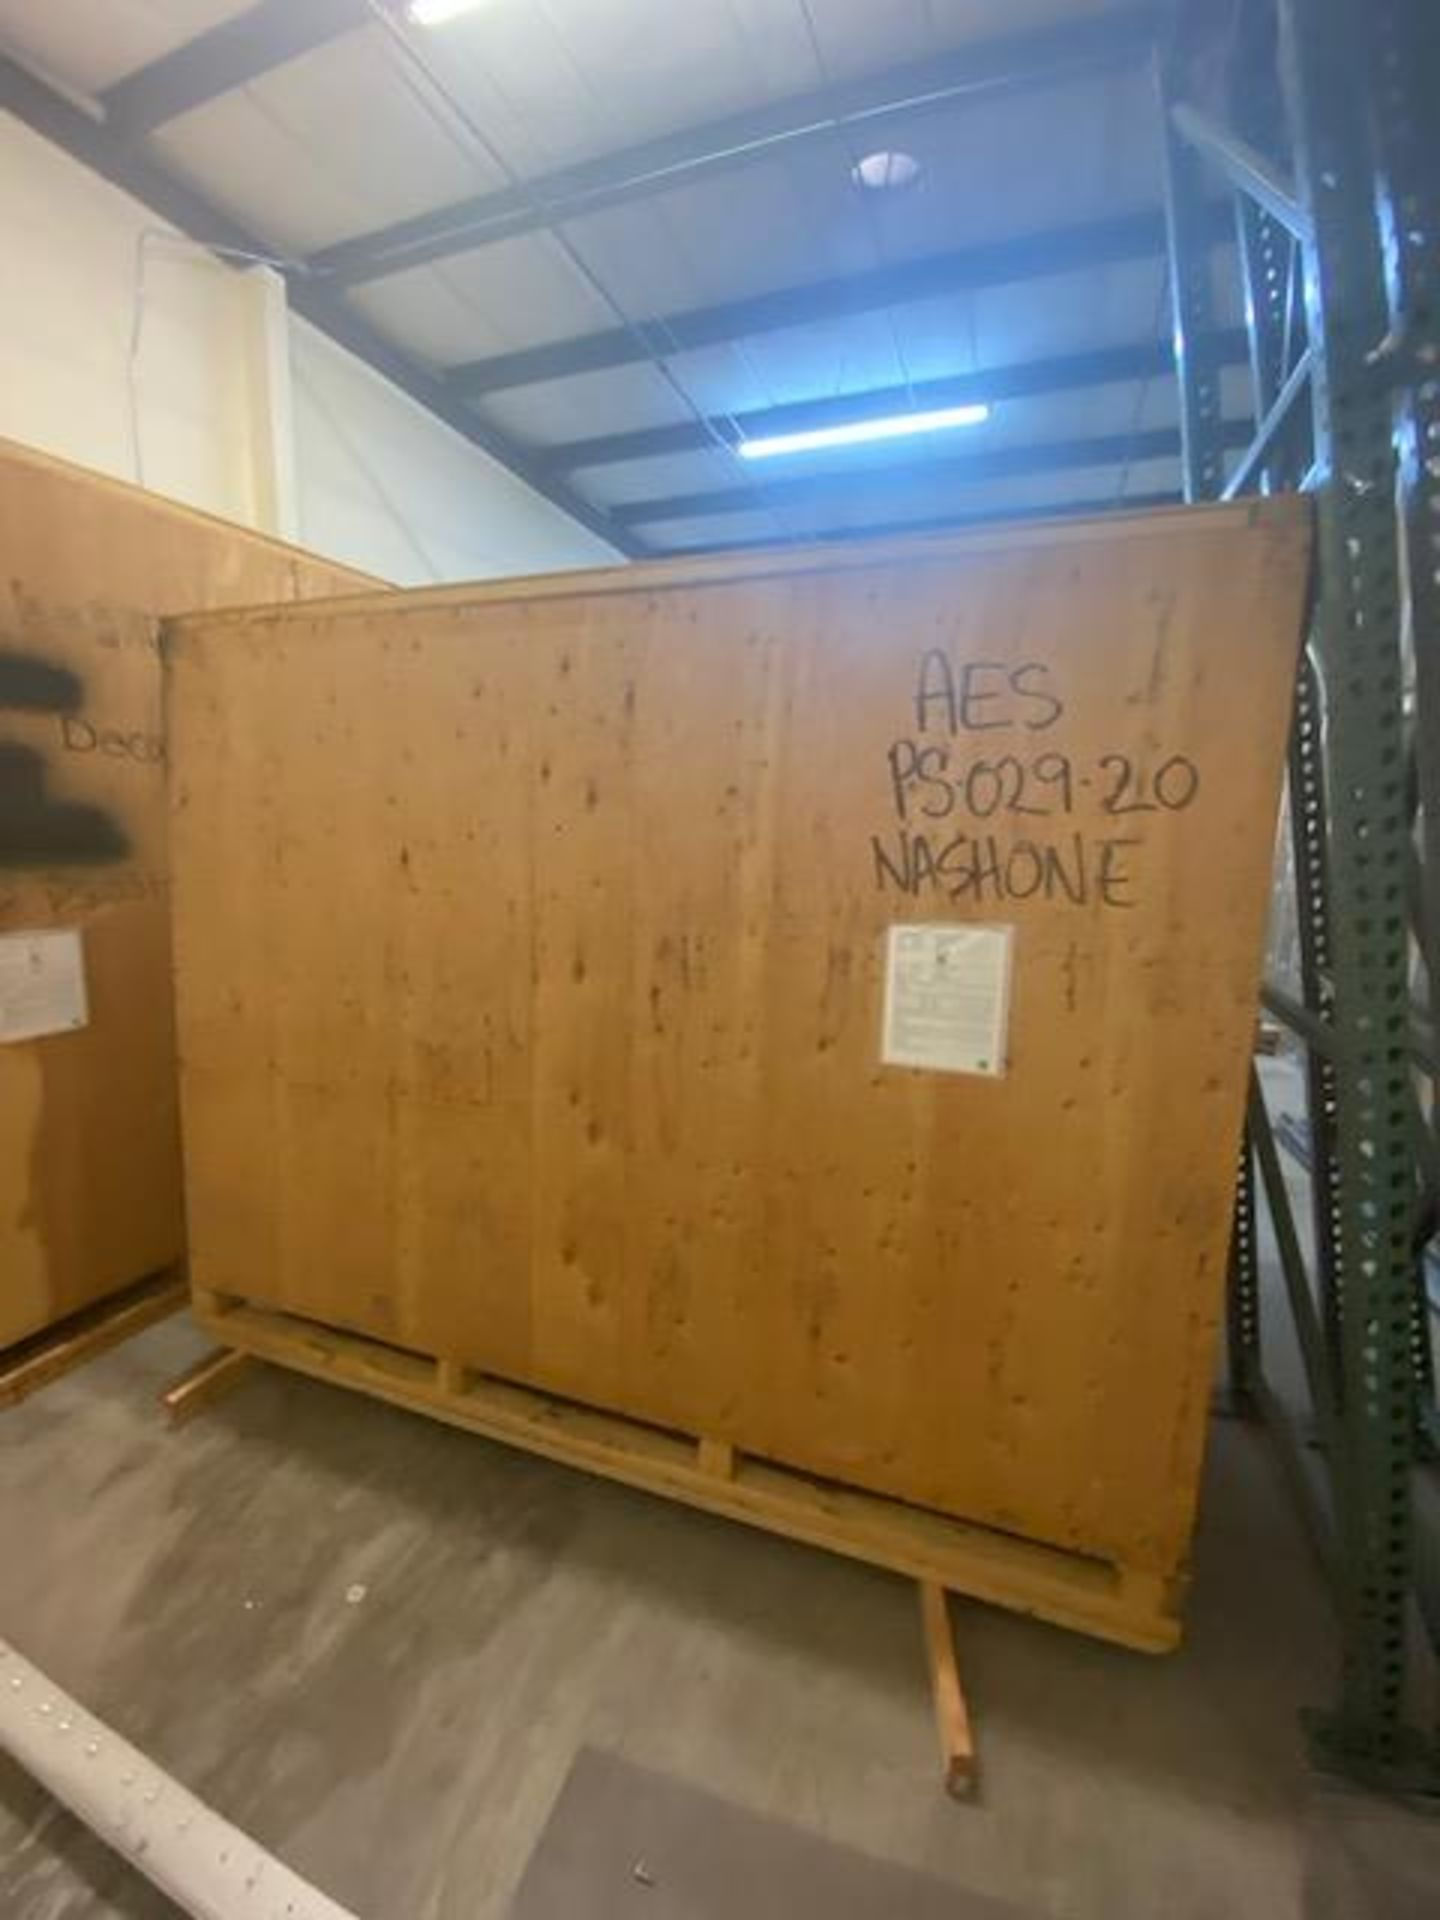 UNUSED/Still-In-Crate-Pinnacle Stainless Complete Extraction Bundle. LISTING HAS FULL INVENTORY. - Image 13 of 14